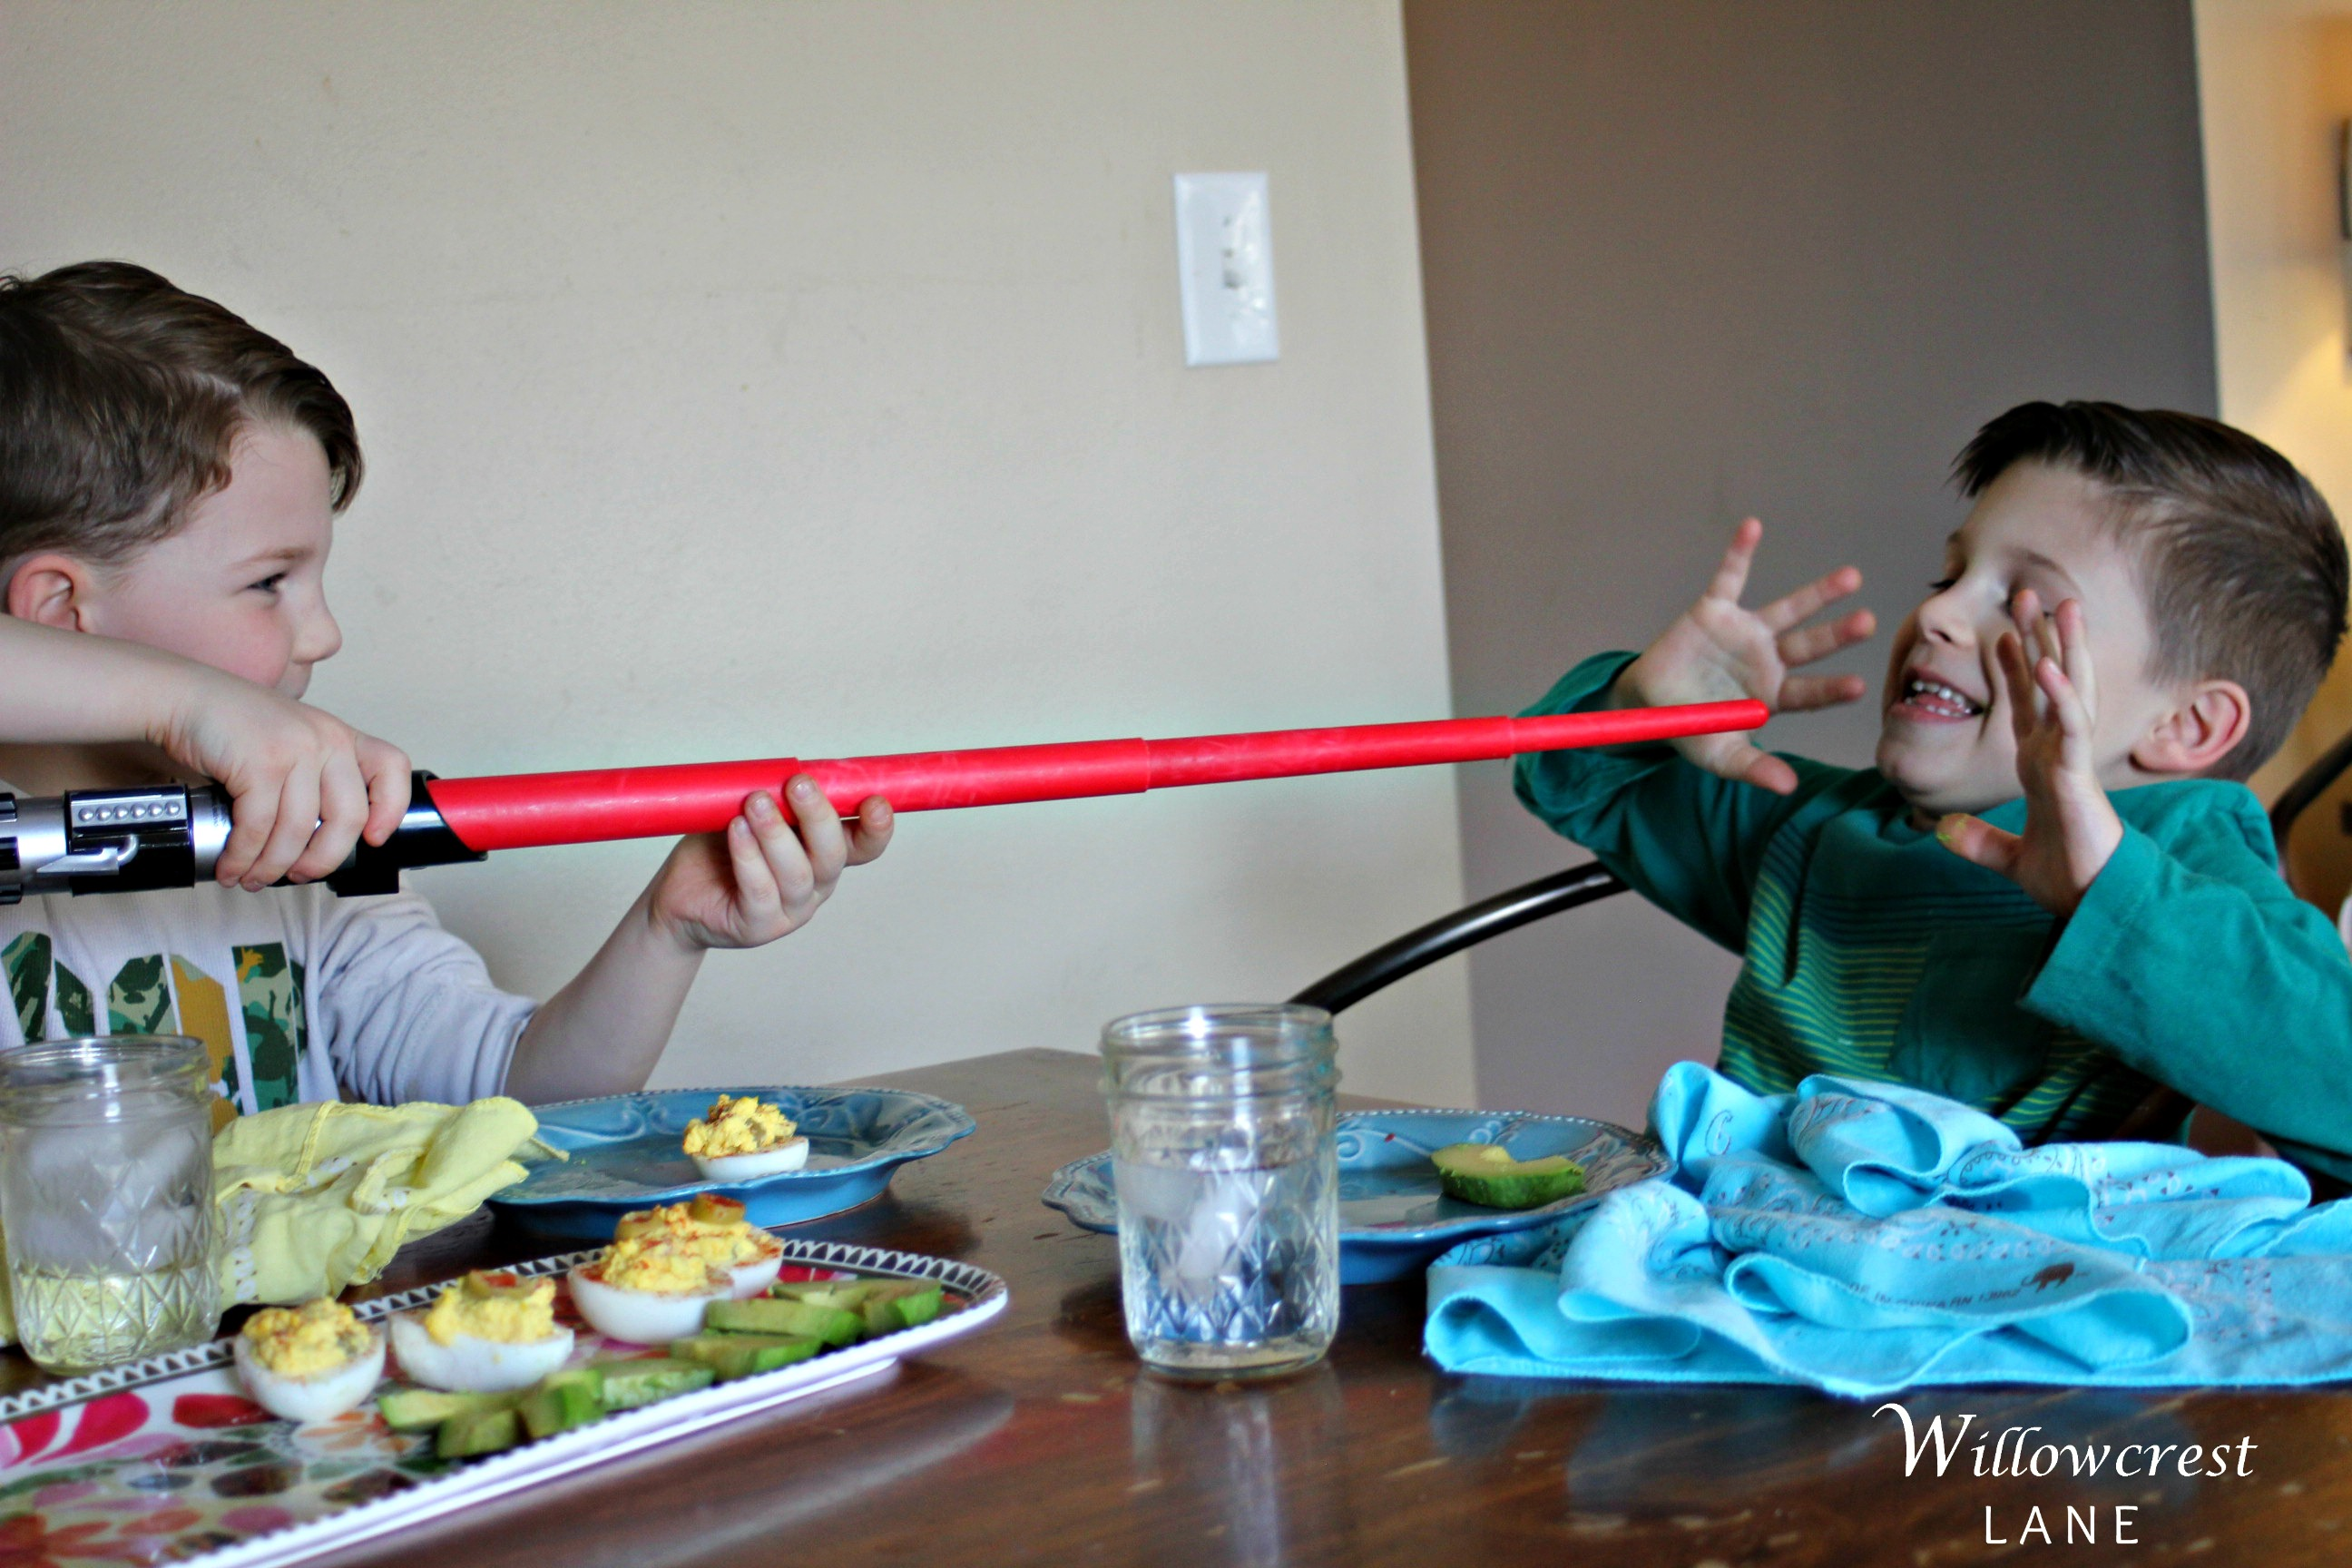 This is what pretty much any activity looks like around here: sword fights with big weapons.